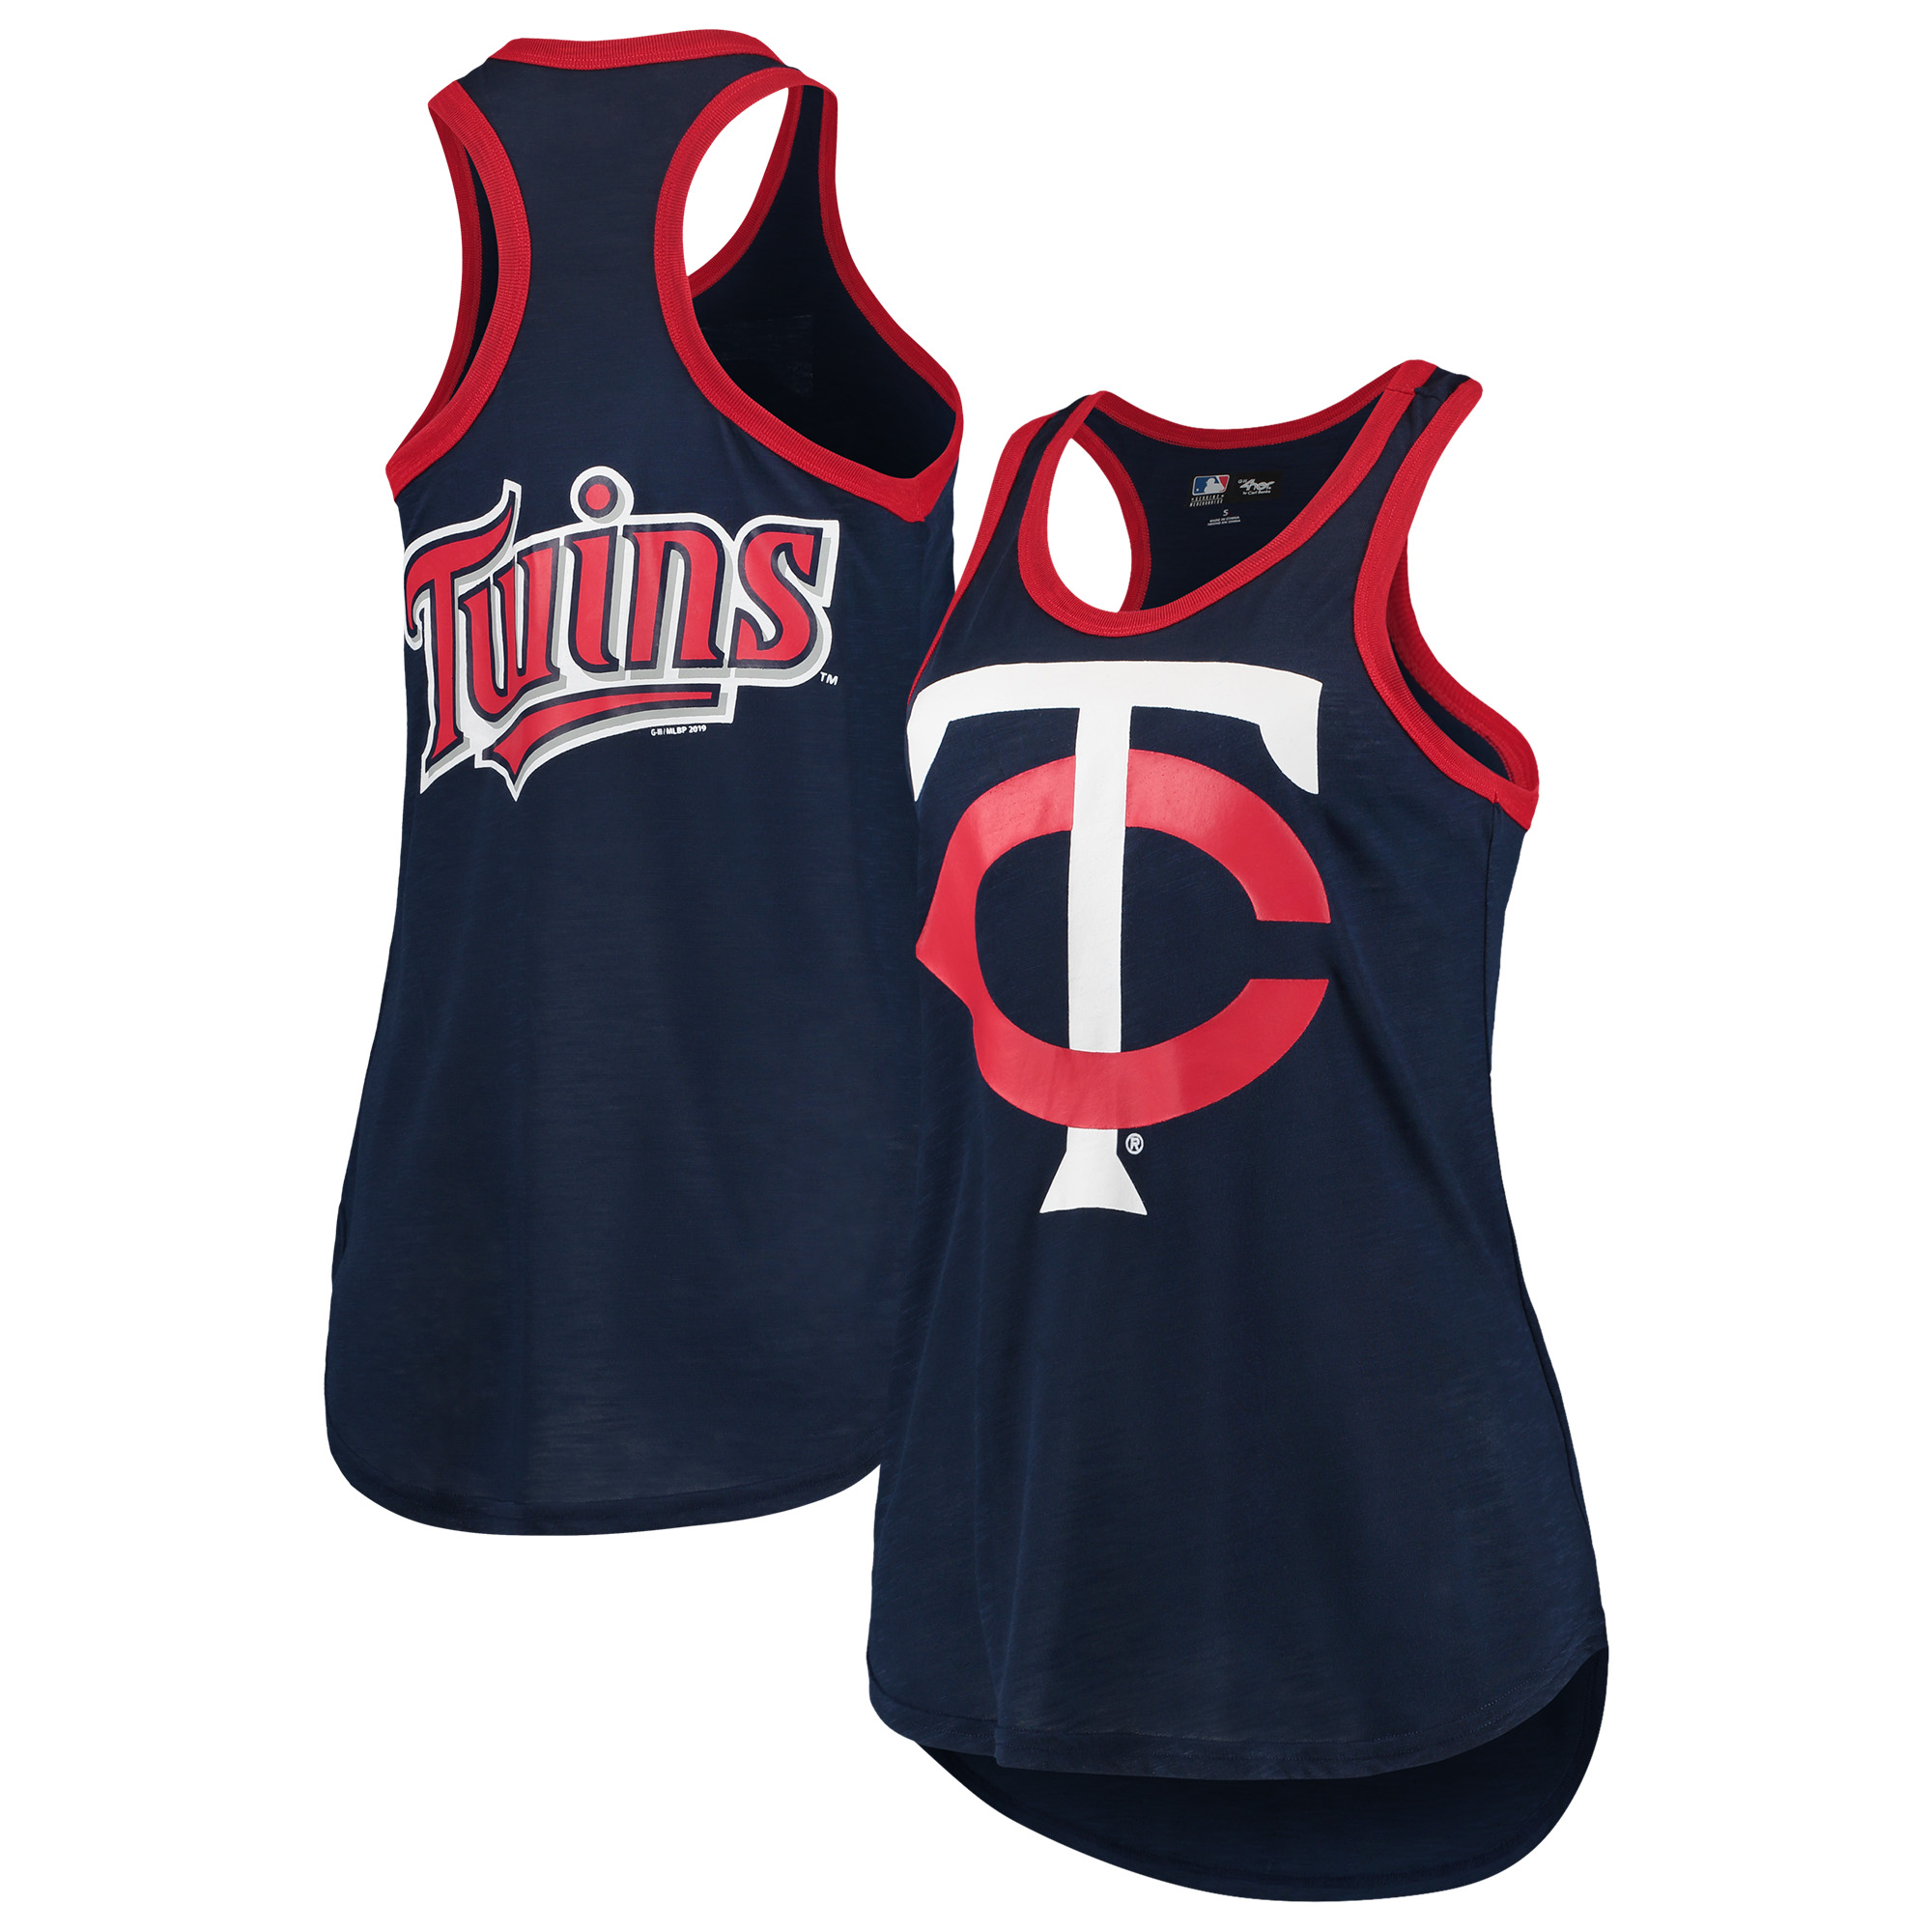 Minnesota Twins G-III 4Her by Carl Banks Women's Team Logo Tater Racerback Tank Top - Navy